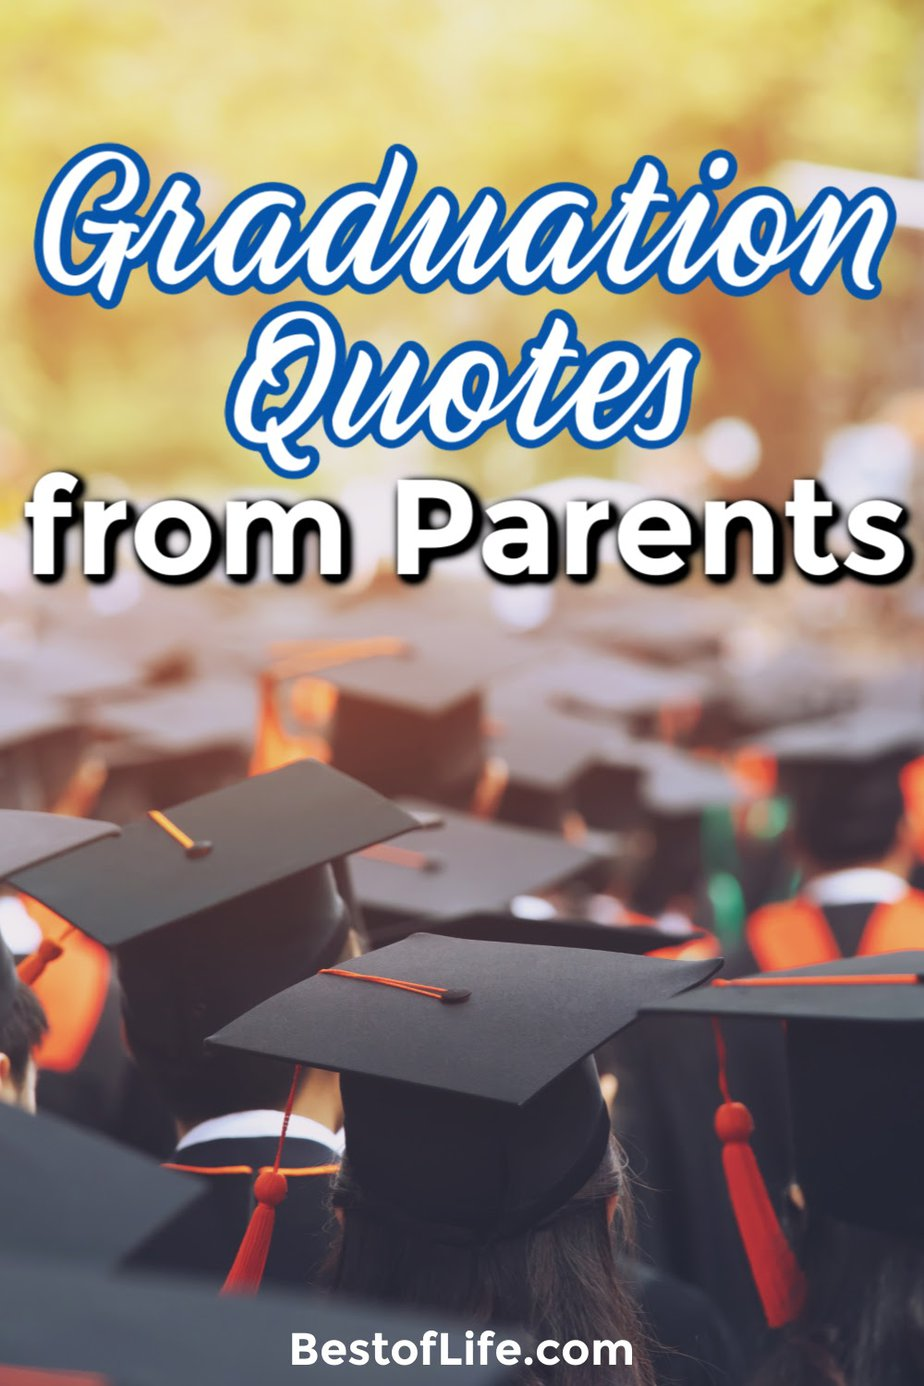 Graduation Quotes from Parents : The Best of Life®